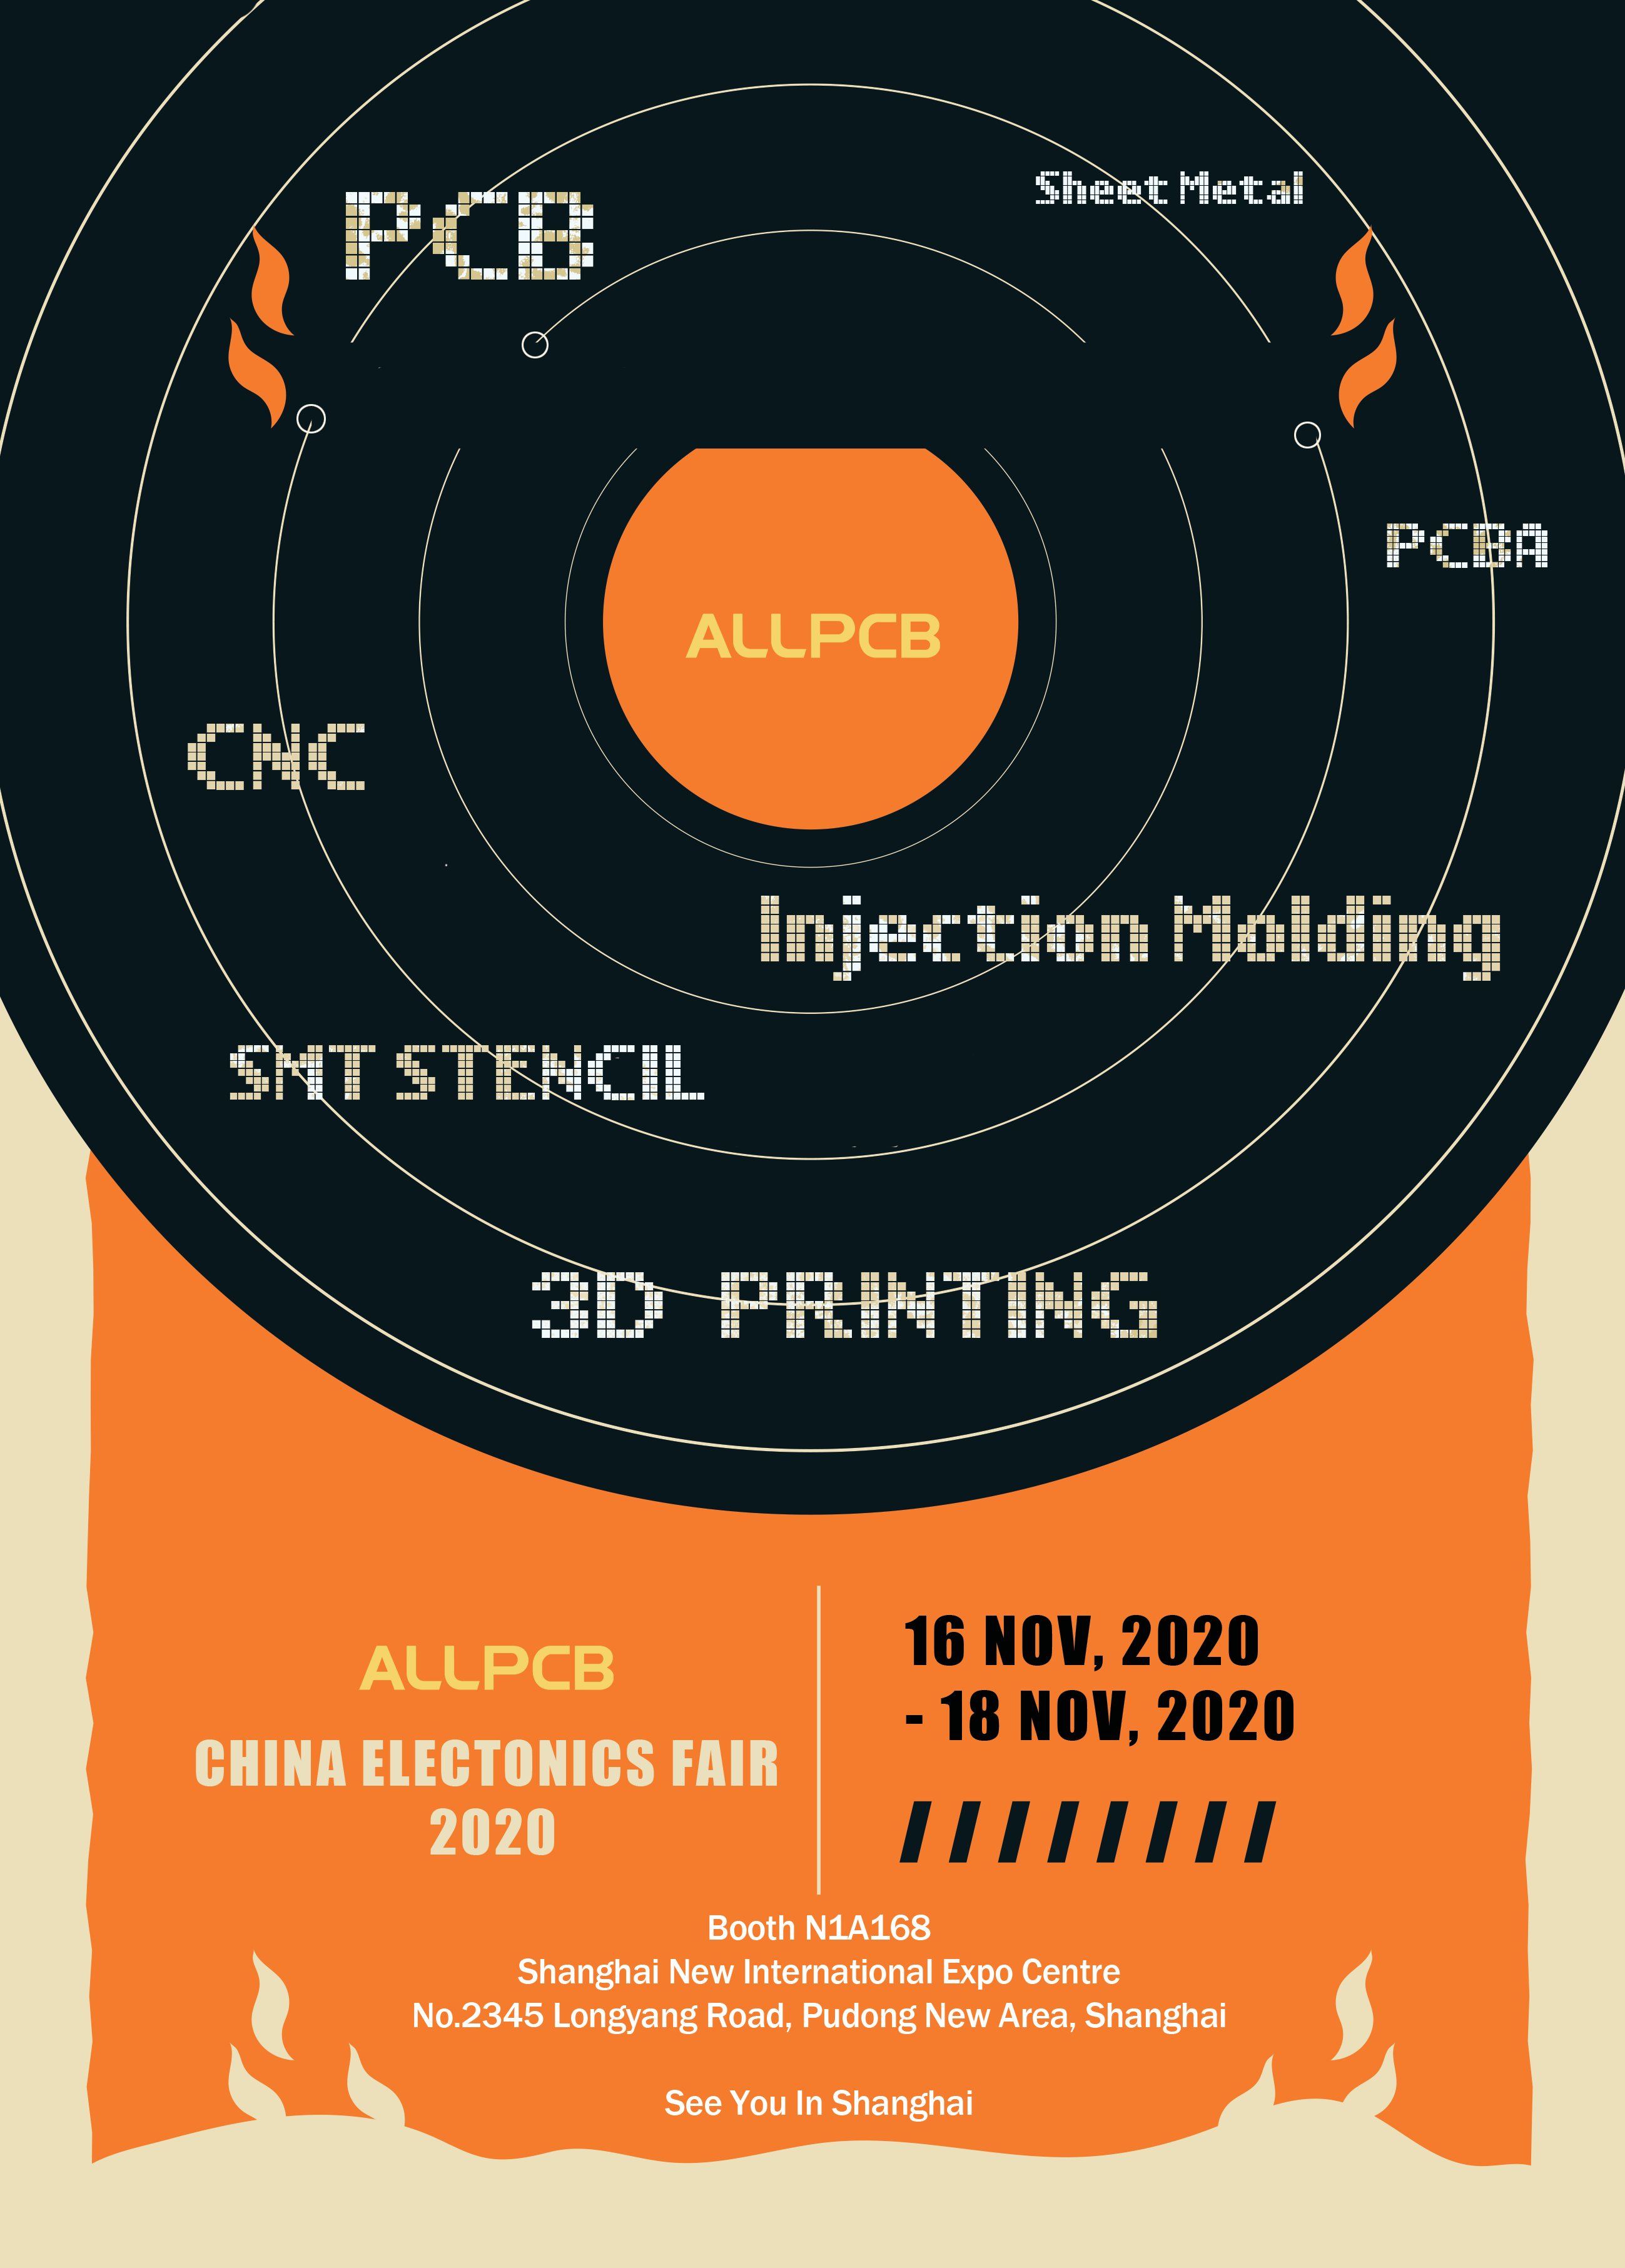 allpcb_CEF_2020_poster.jpg.png